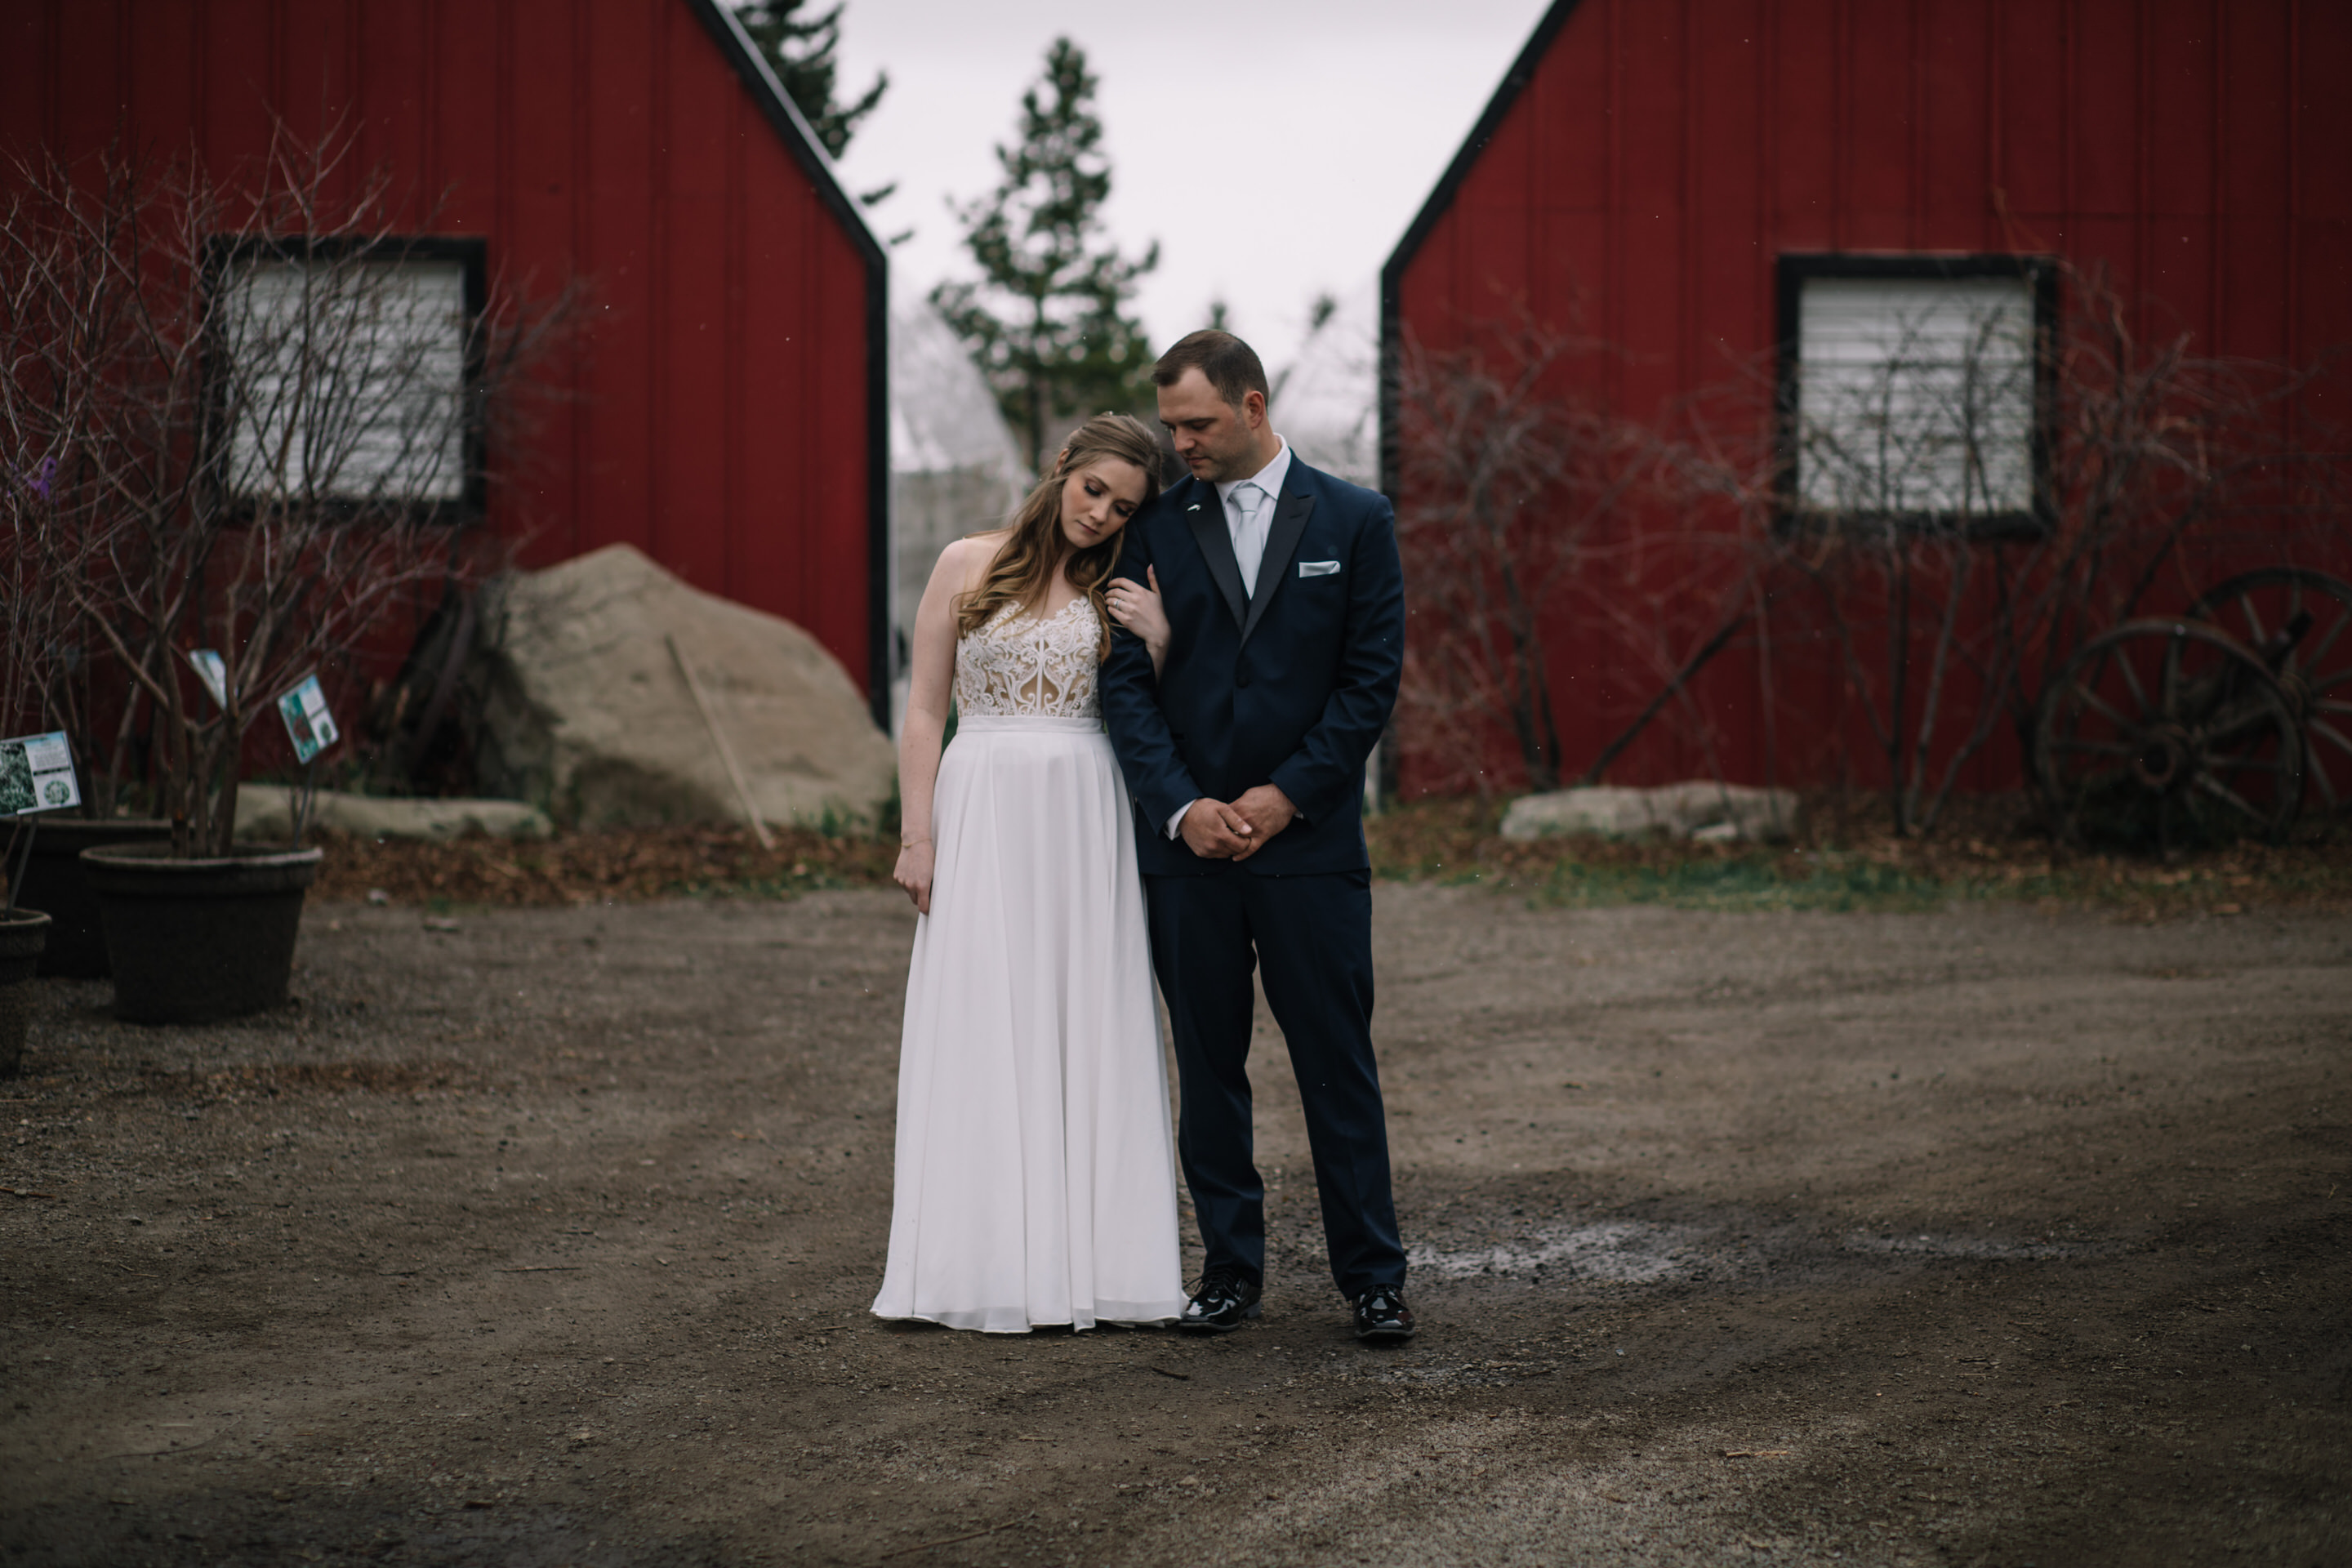 Best Calgary Photographers | Saskatoon Farm Wedding | Banff Wedding Photography | Canmore Wedding Photography | Intimate Weddings | Calgary Elopement | Anita Jeanine Photography | Greenhouse Wedding | Barn Wedding | Outdoor Wedding